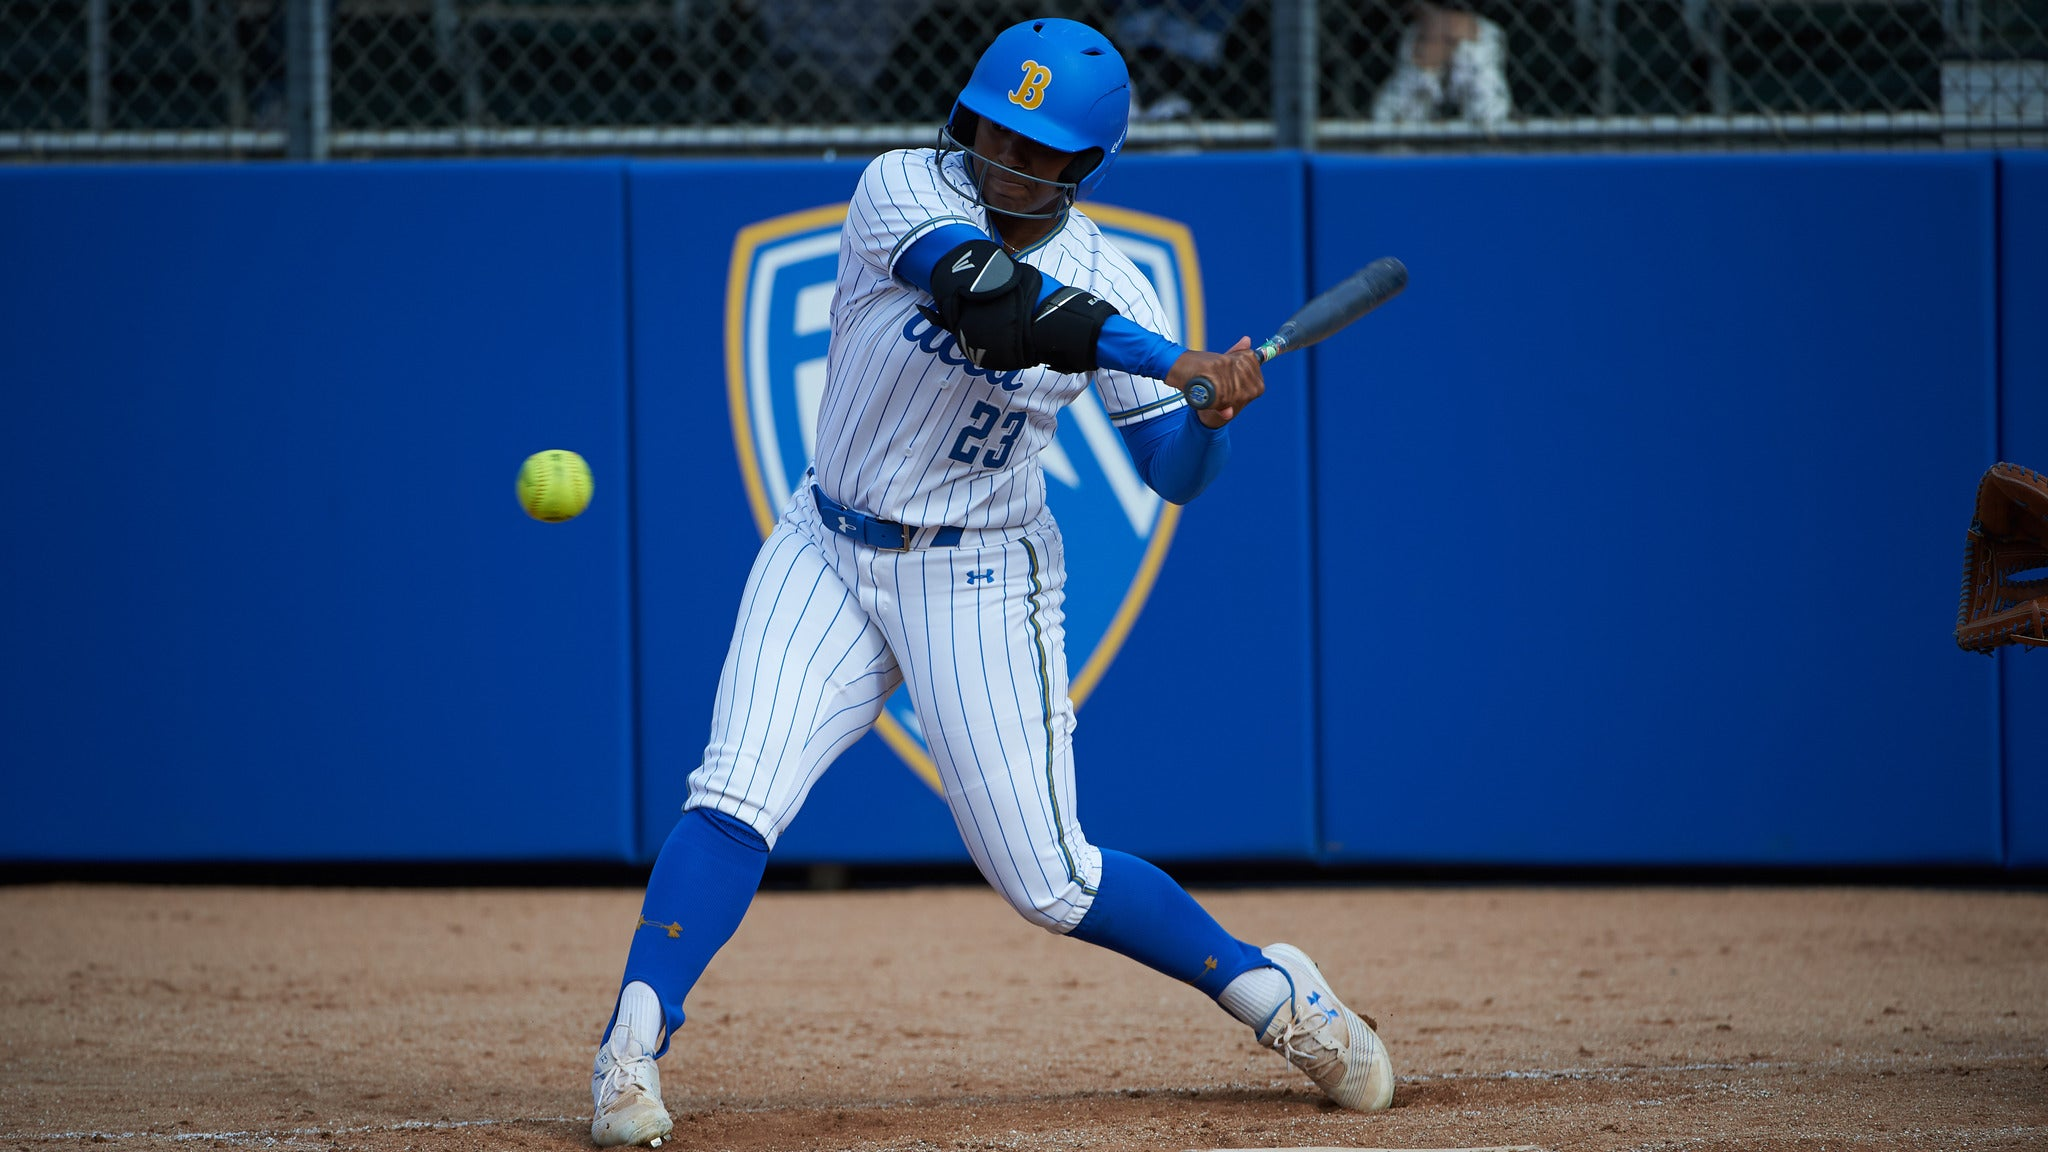 UCLA Bruins Softball v. Washington at Easton Stadium - Los Angeles, CA 90095